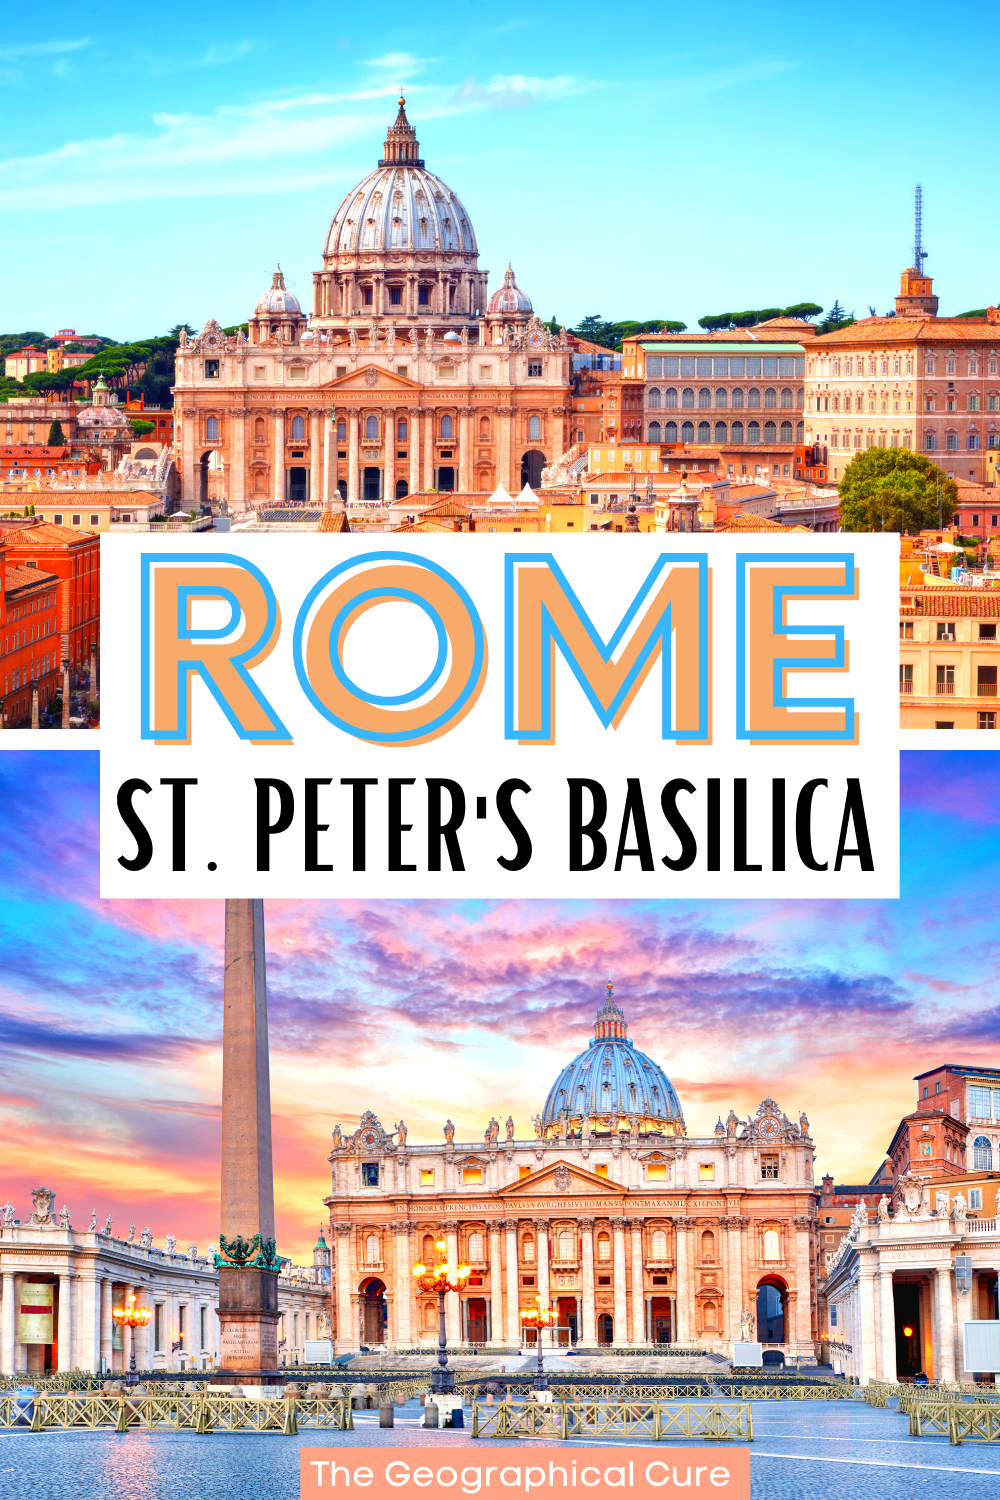 guide to St. Peter's Basilica, a must see site in Rome Italy